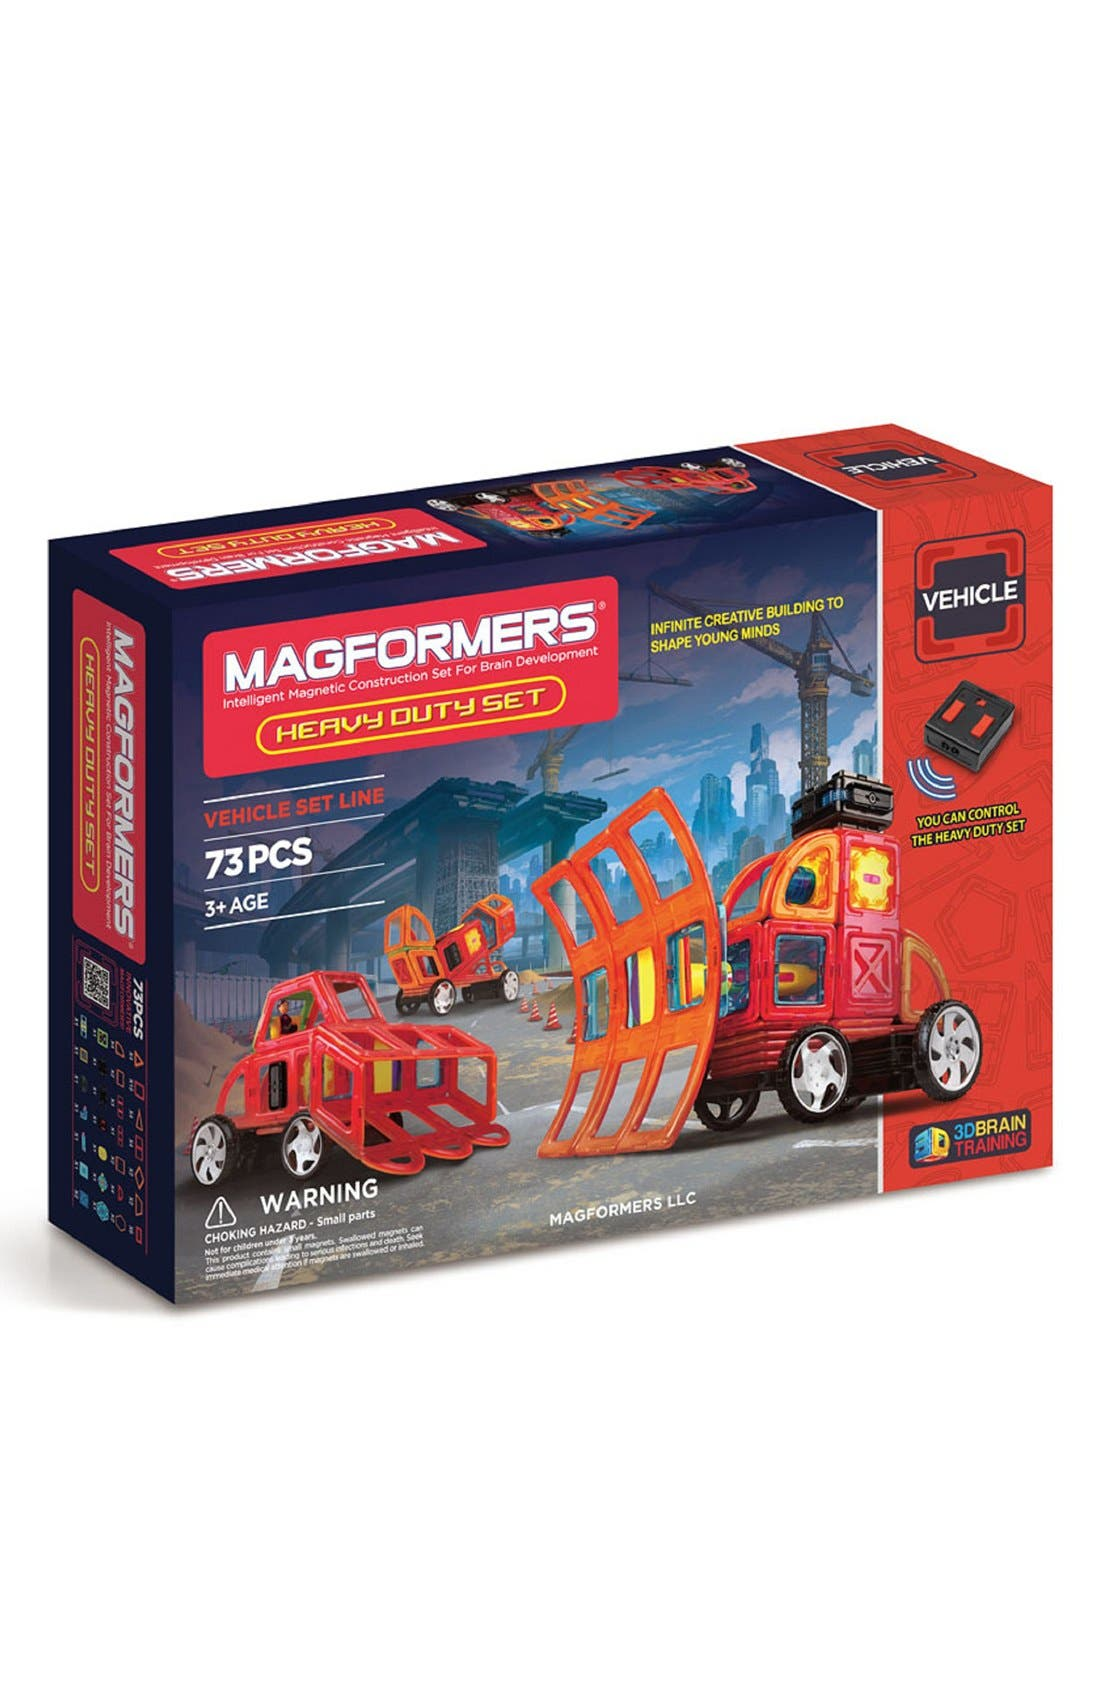 Magformers 'Heavy Duty' Magnetic Remote Control Vehicle Construction Set